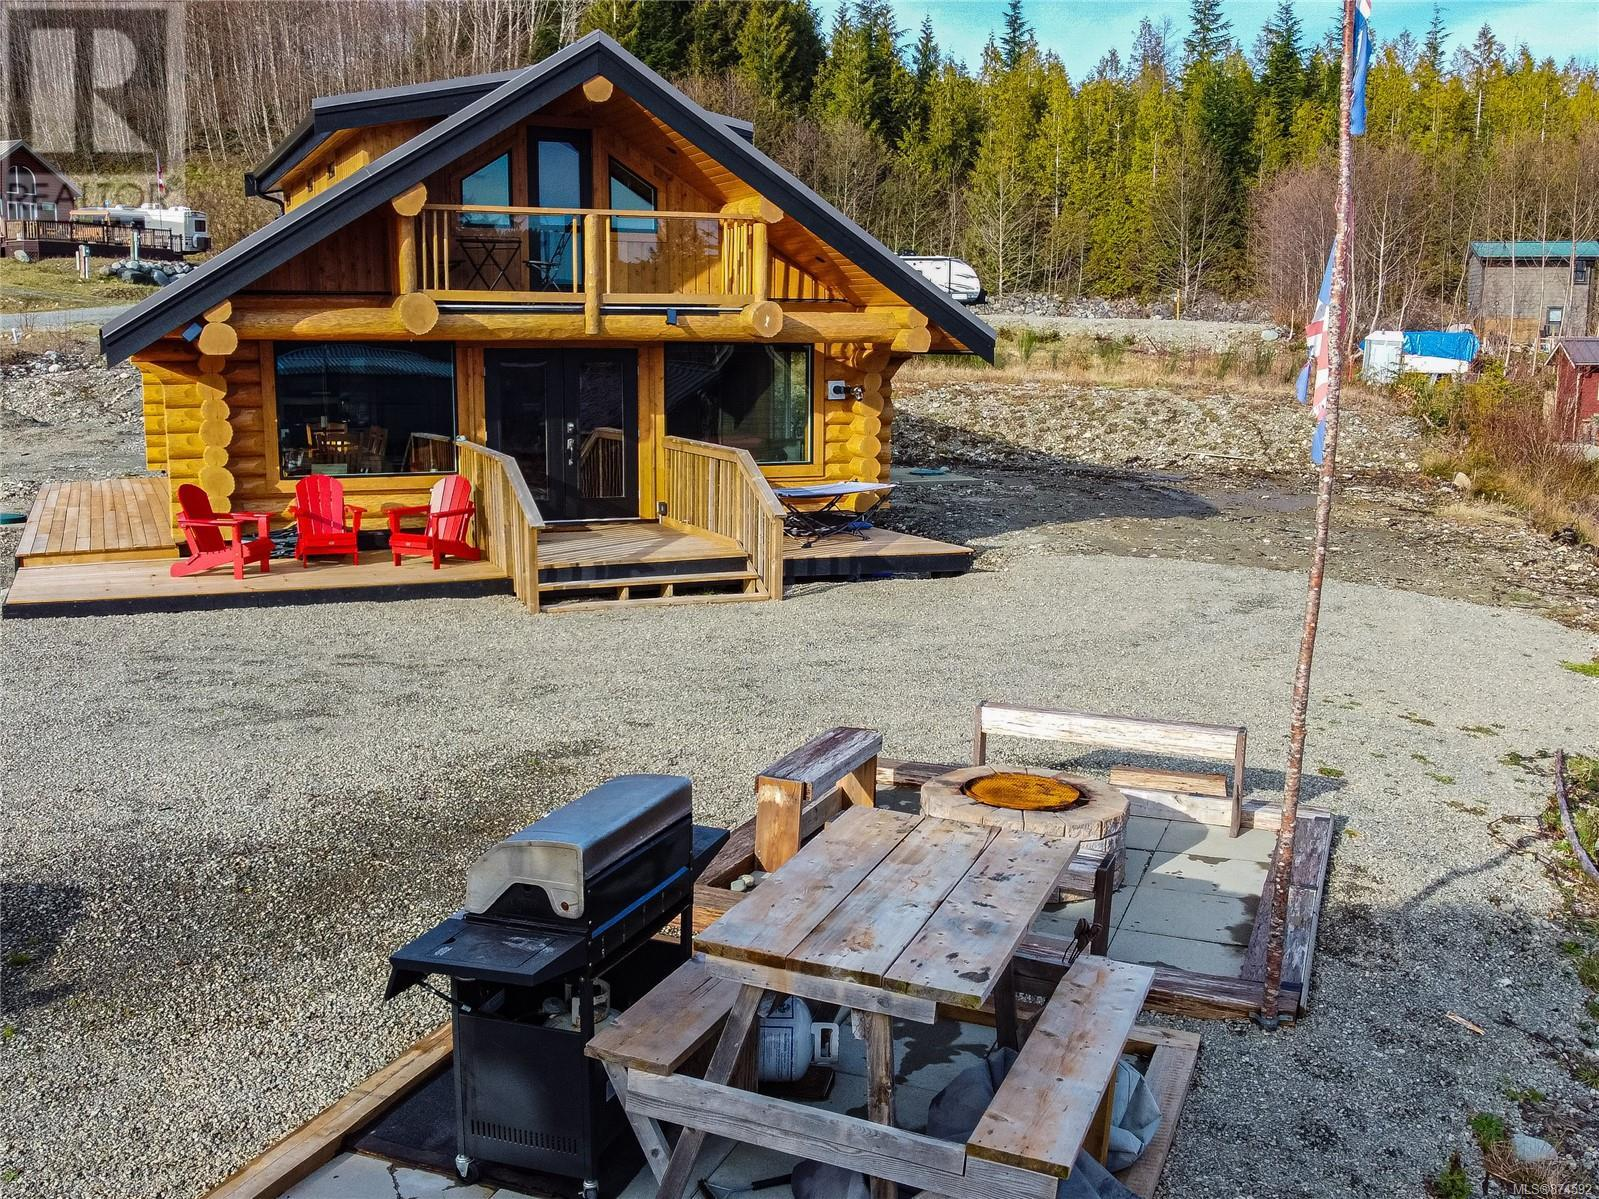 MLS® #874592 - Ucluelet House For sale Image #8